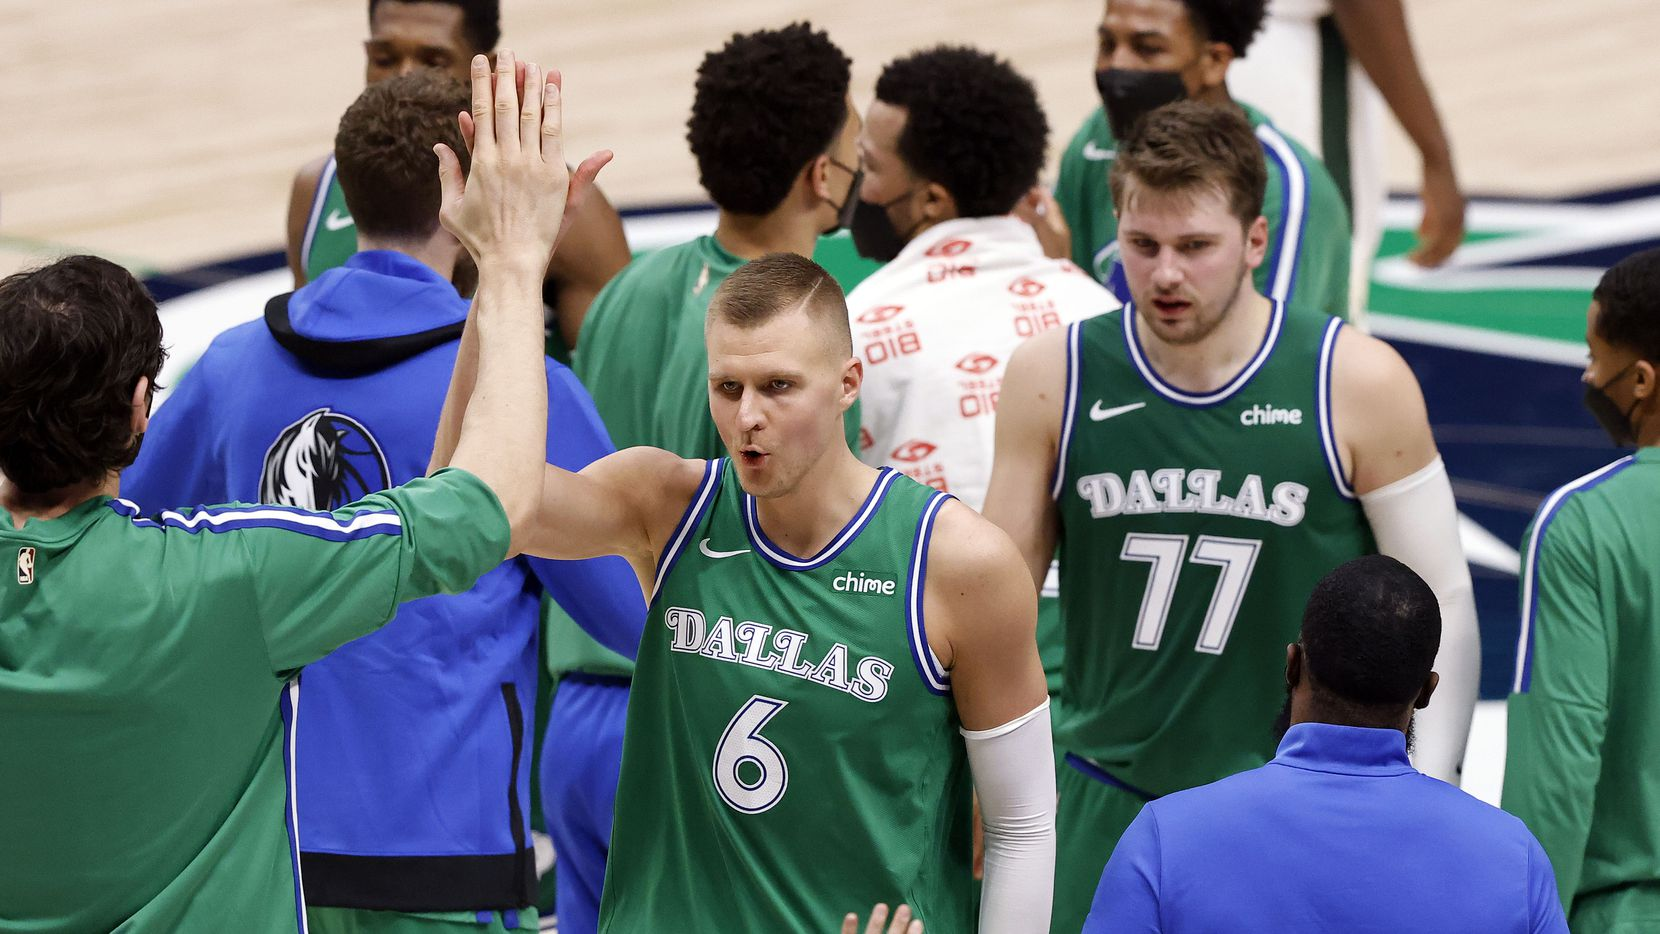 Dallas Mavericks center Kristaps Porzingis (6) is congratulated by teammates for his fourth quarter play against the Milwaukee Bucks at the American Airlines Center in Dallas, Thursday, April 8, 2021. The Maverick defeated the Bucks, 116-101. (Tom Fox/The Dallas Morning News)